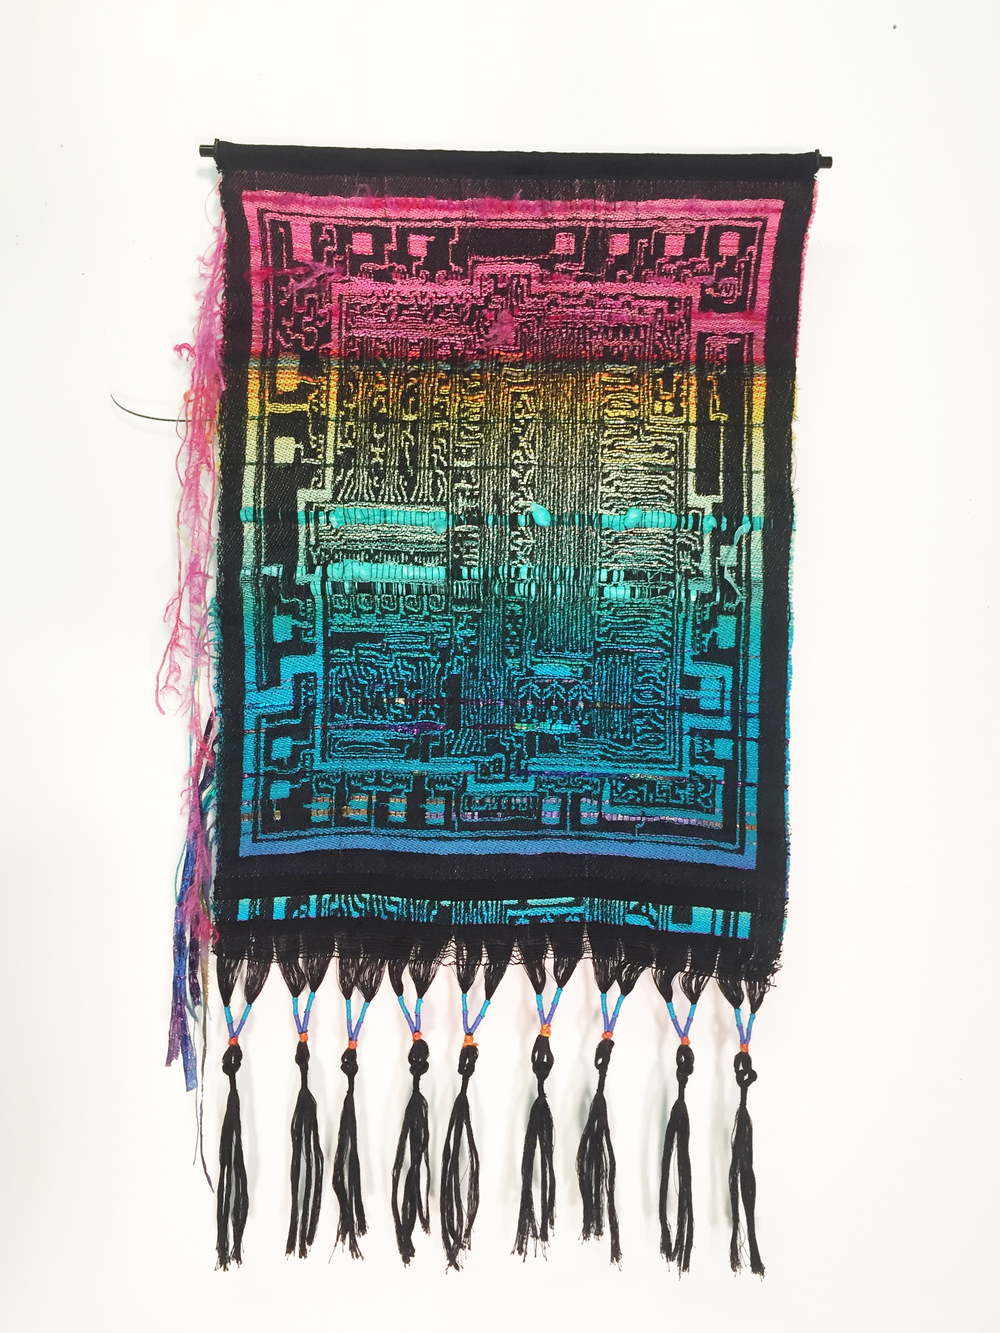 "Robin Kang, Integrated Circuit Spectrum, Hand Jacquard woven cotton, hand dyed wool, alpaca, and synthetic fibers 19 x 35"", 2016"